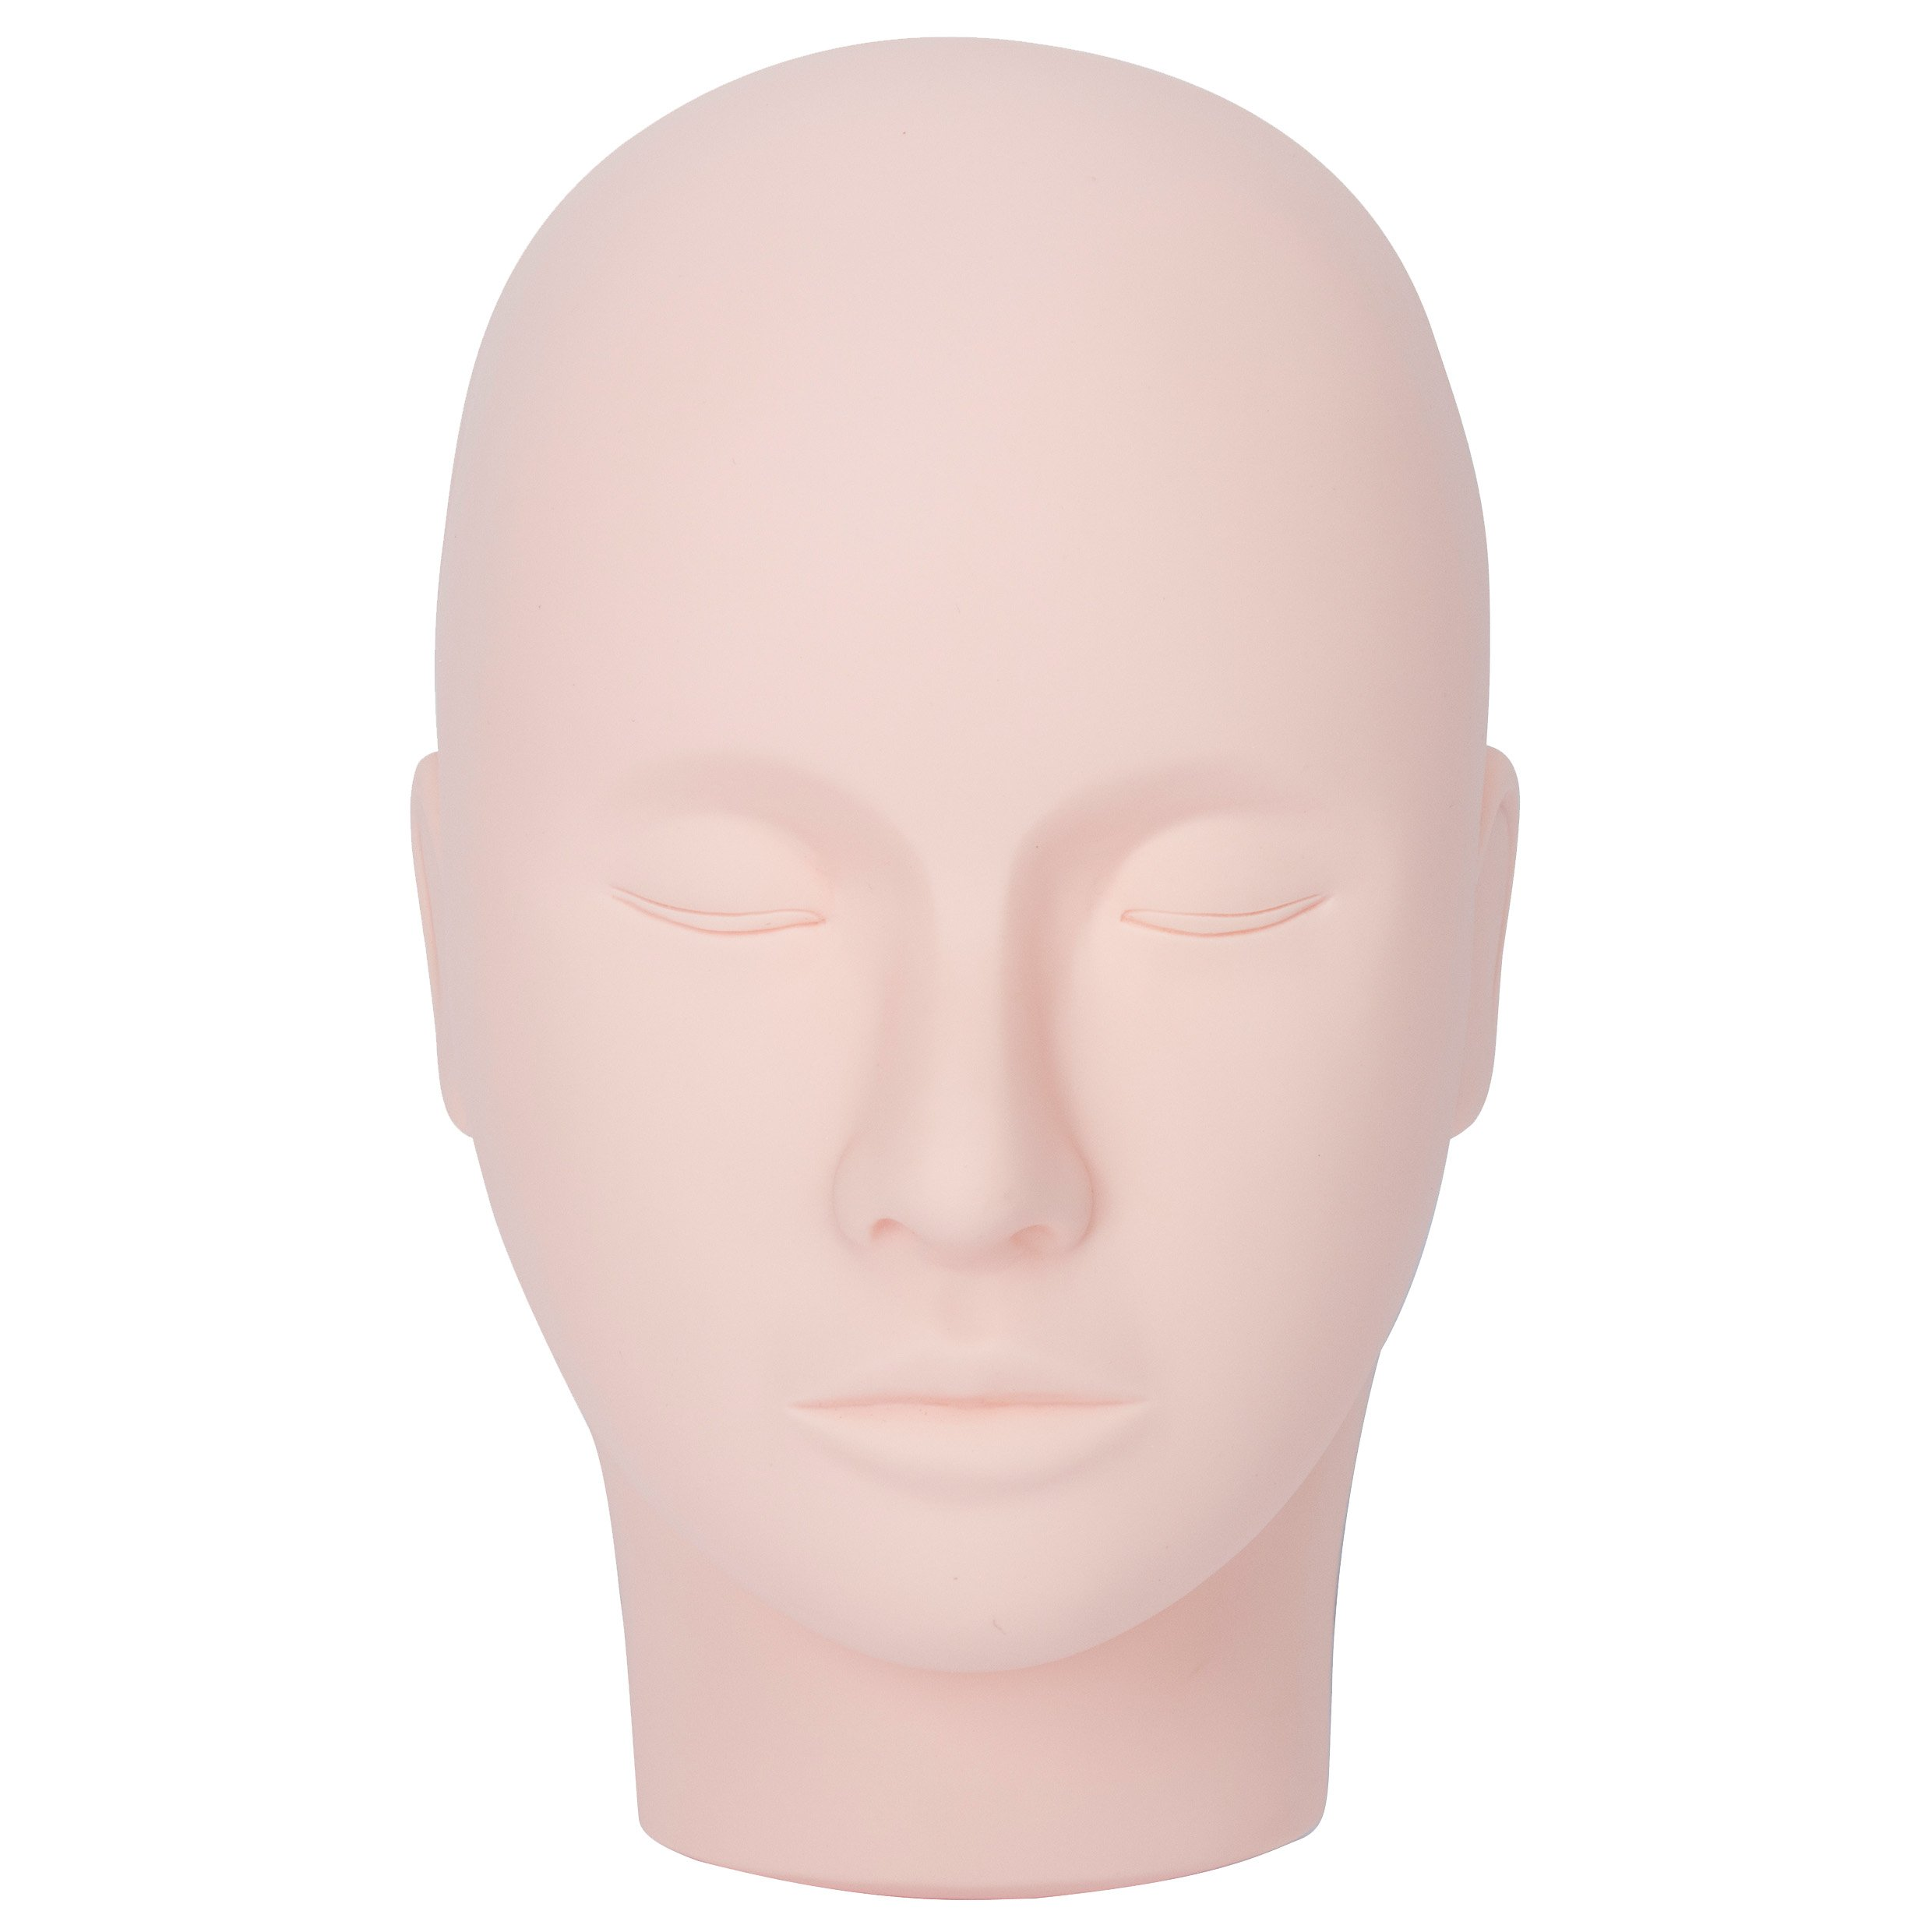 Rubber Practice Mannequin Manikin Head Eyelashes Makeup Massage Practice by BHD BEAUTY (Image #3)